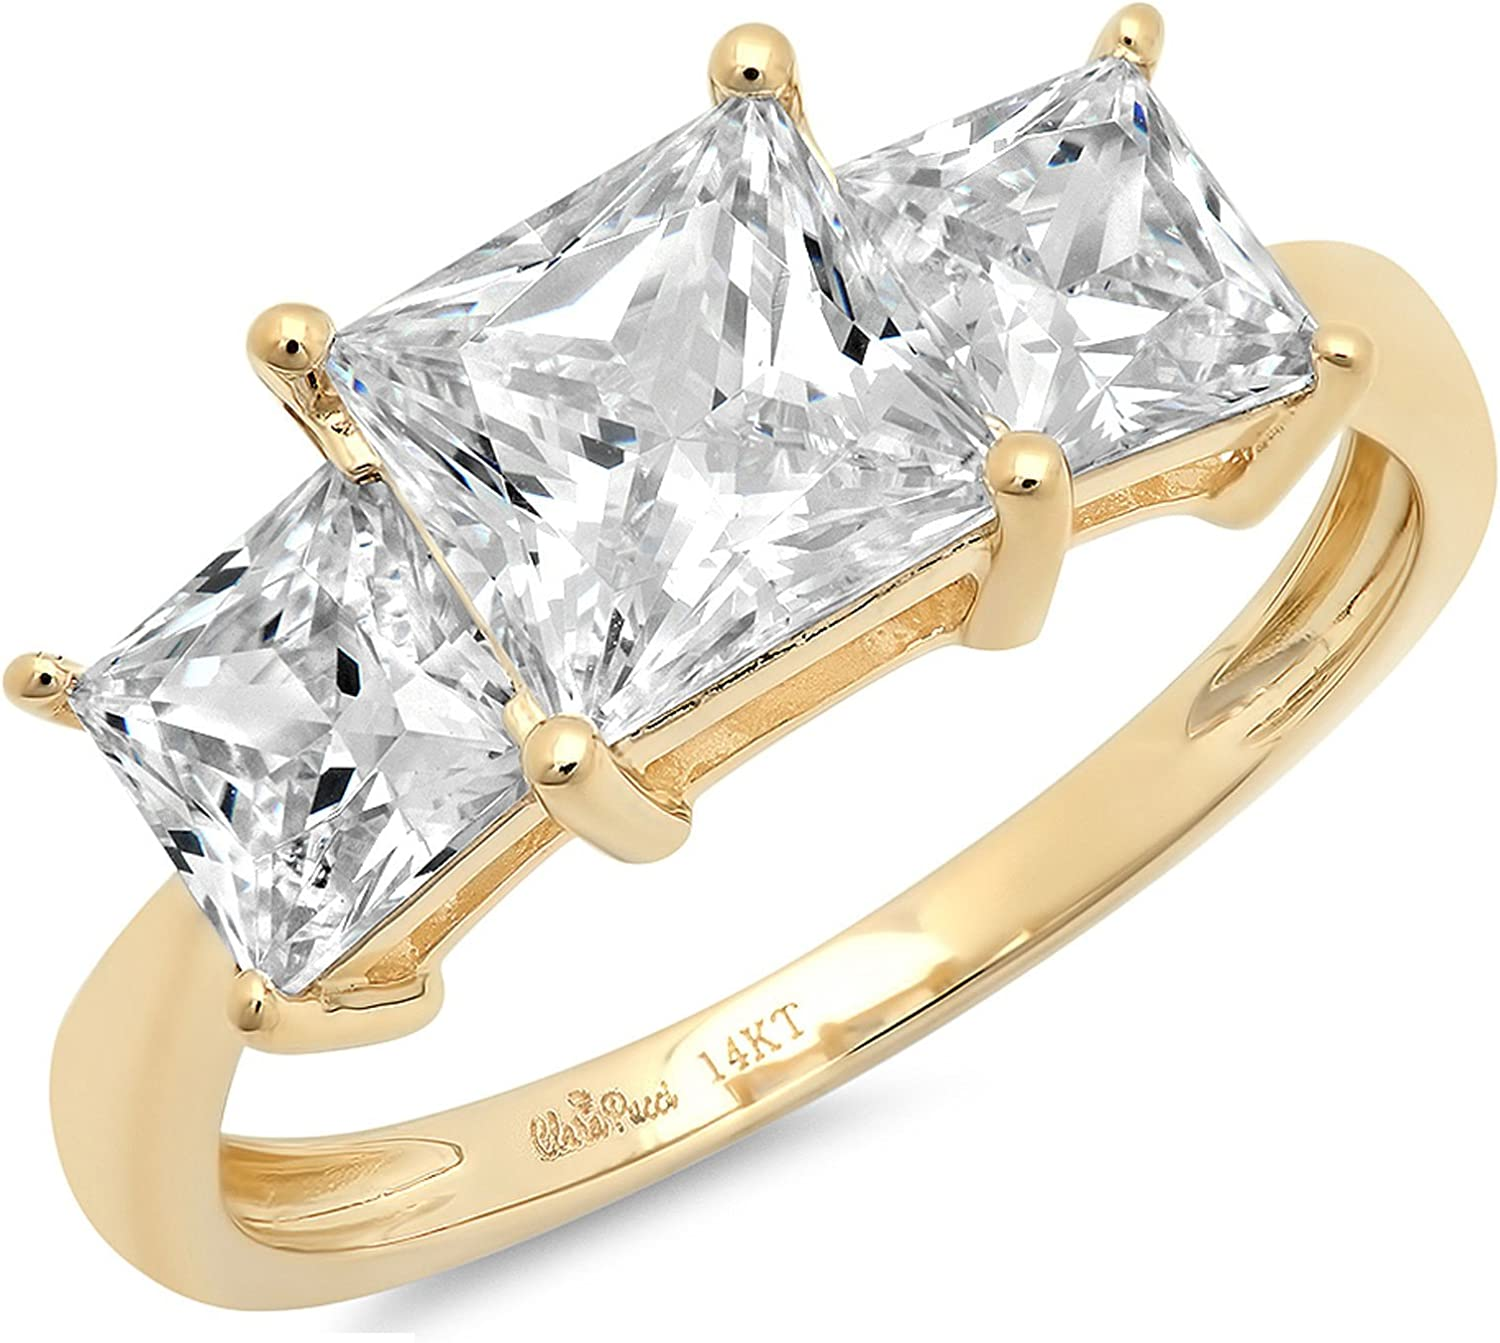 3ct Brilliant Princess Cut 3 Stone Solitaire with Accent Stunning Genuine Moissanite Ideal VVS1 & Simulated Diamond Engagement Promise Statement Anniversary Bridal Wedding Ring Solid 14k Yellow Gold